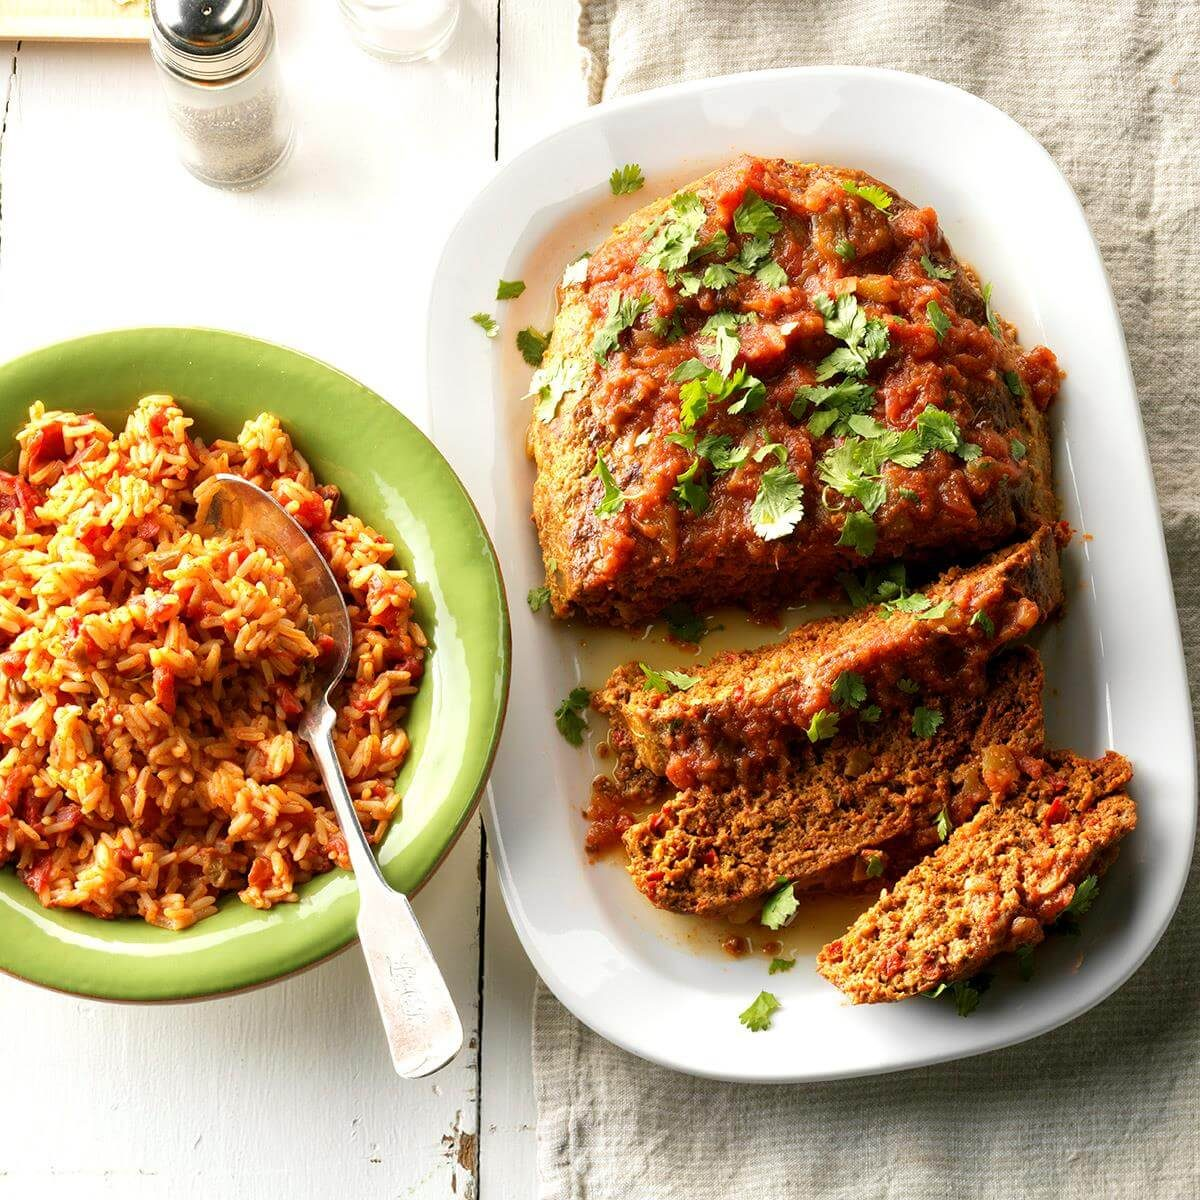 Top 10 Mexican Dinner Recipes: Mexican Turkey Meat Loaf Recipe